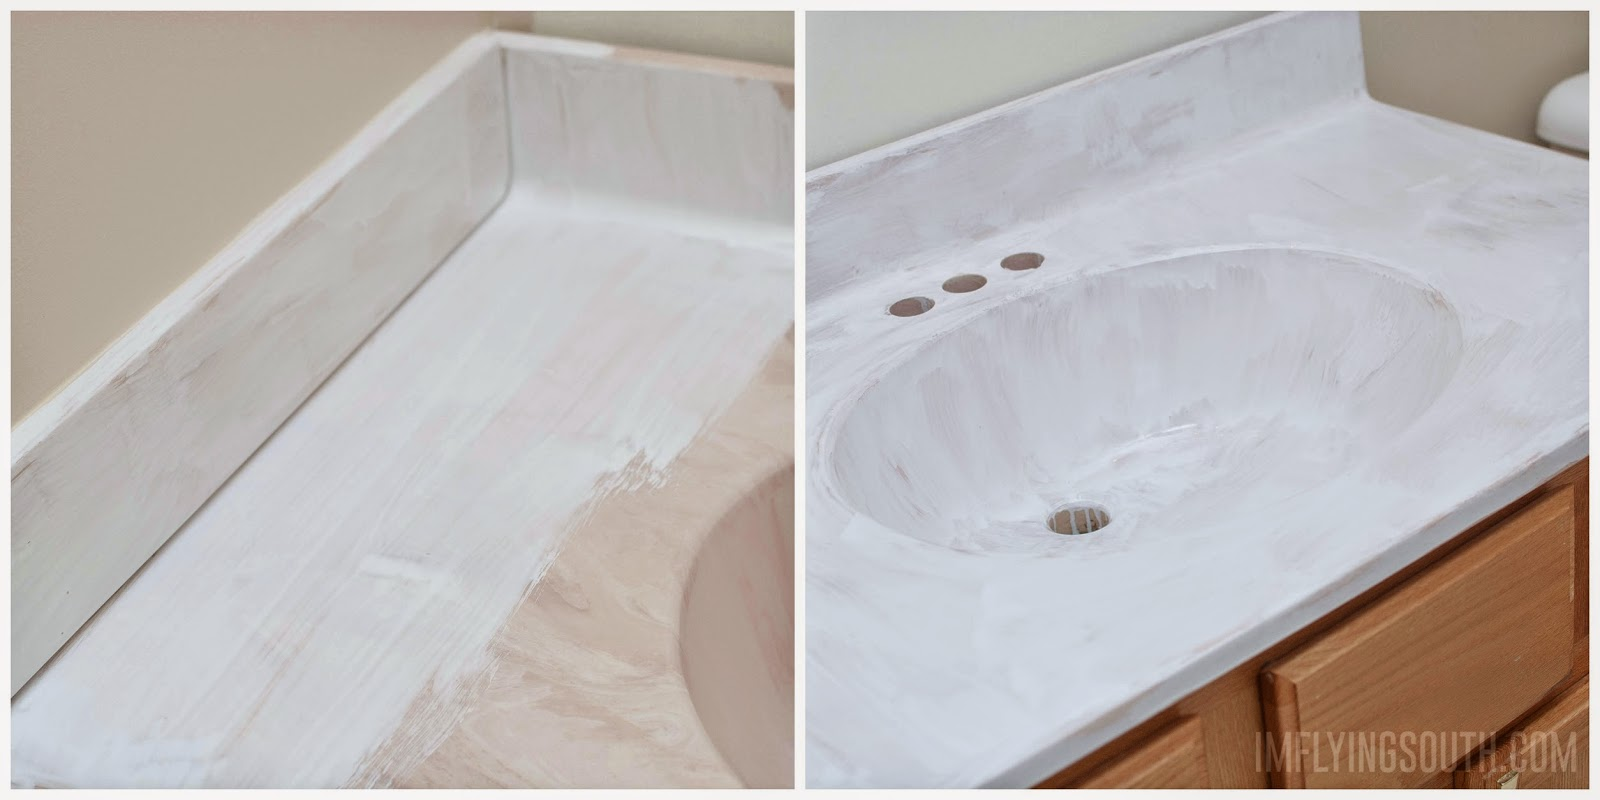 How To Paint A Bathroom Sink   Iu0027m Flying South Featured On @Remodelaholic